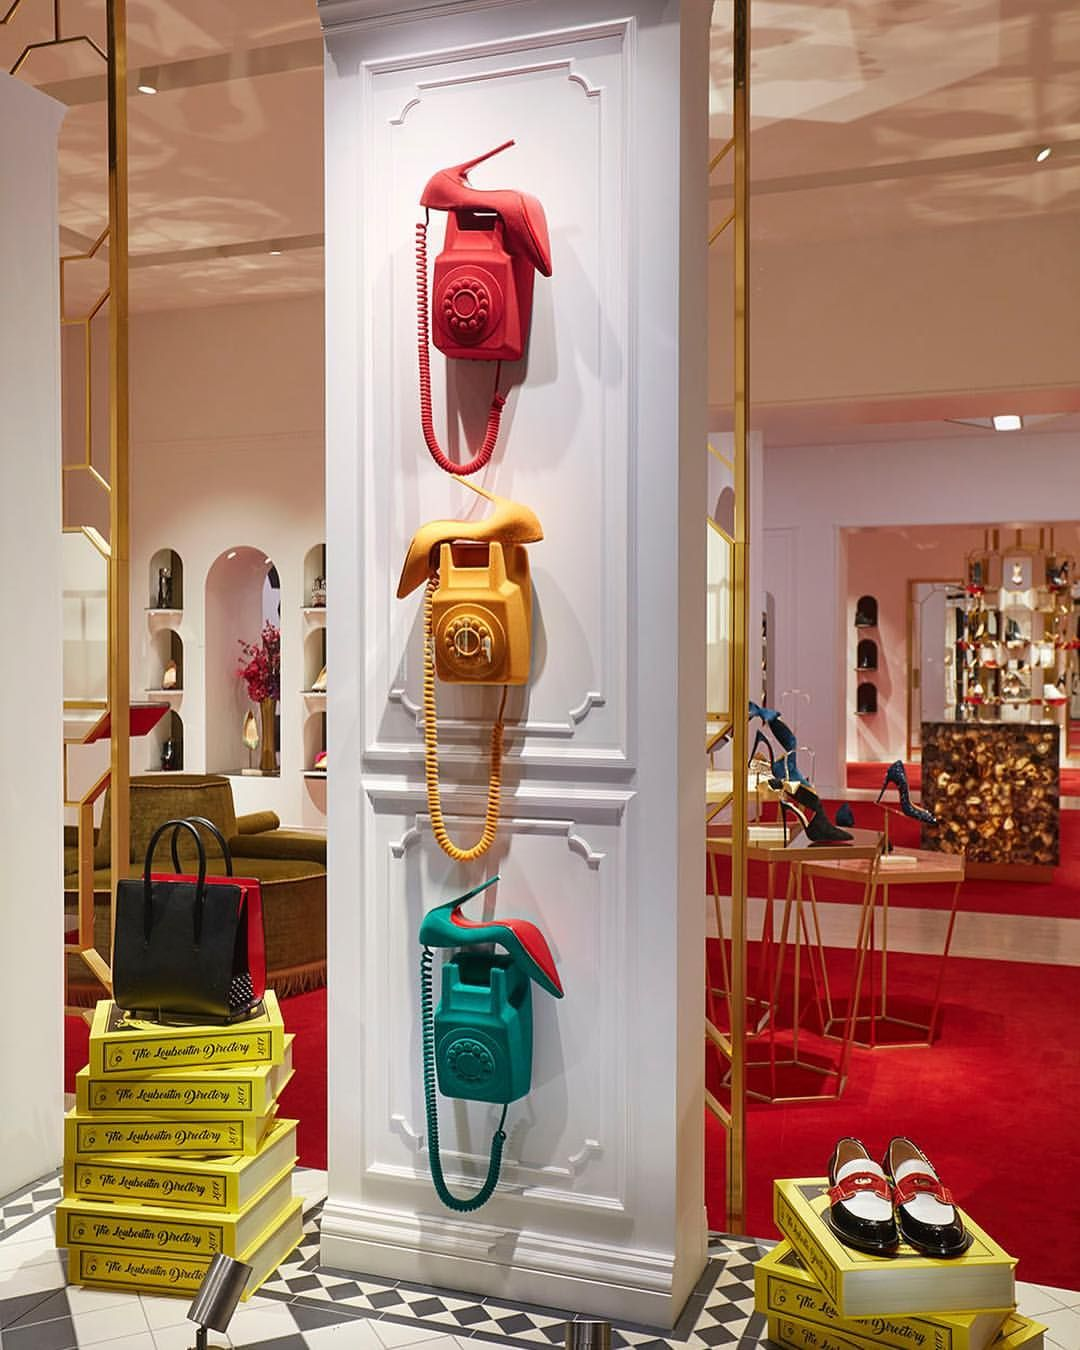 """CHRISTIAN LOUBOUTIN, Mount Street, London, UK, """"Ring ring!   The surreal and glamorous phones wiggle and shake"""", creative by StudioXAG, pinned by Ton van der Veer"""